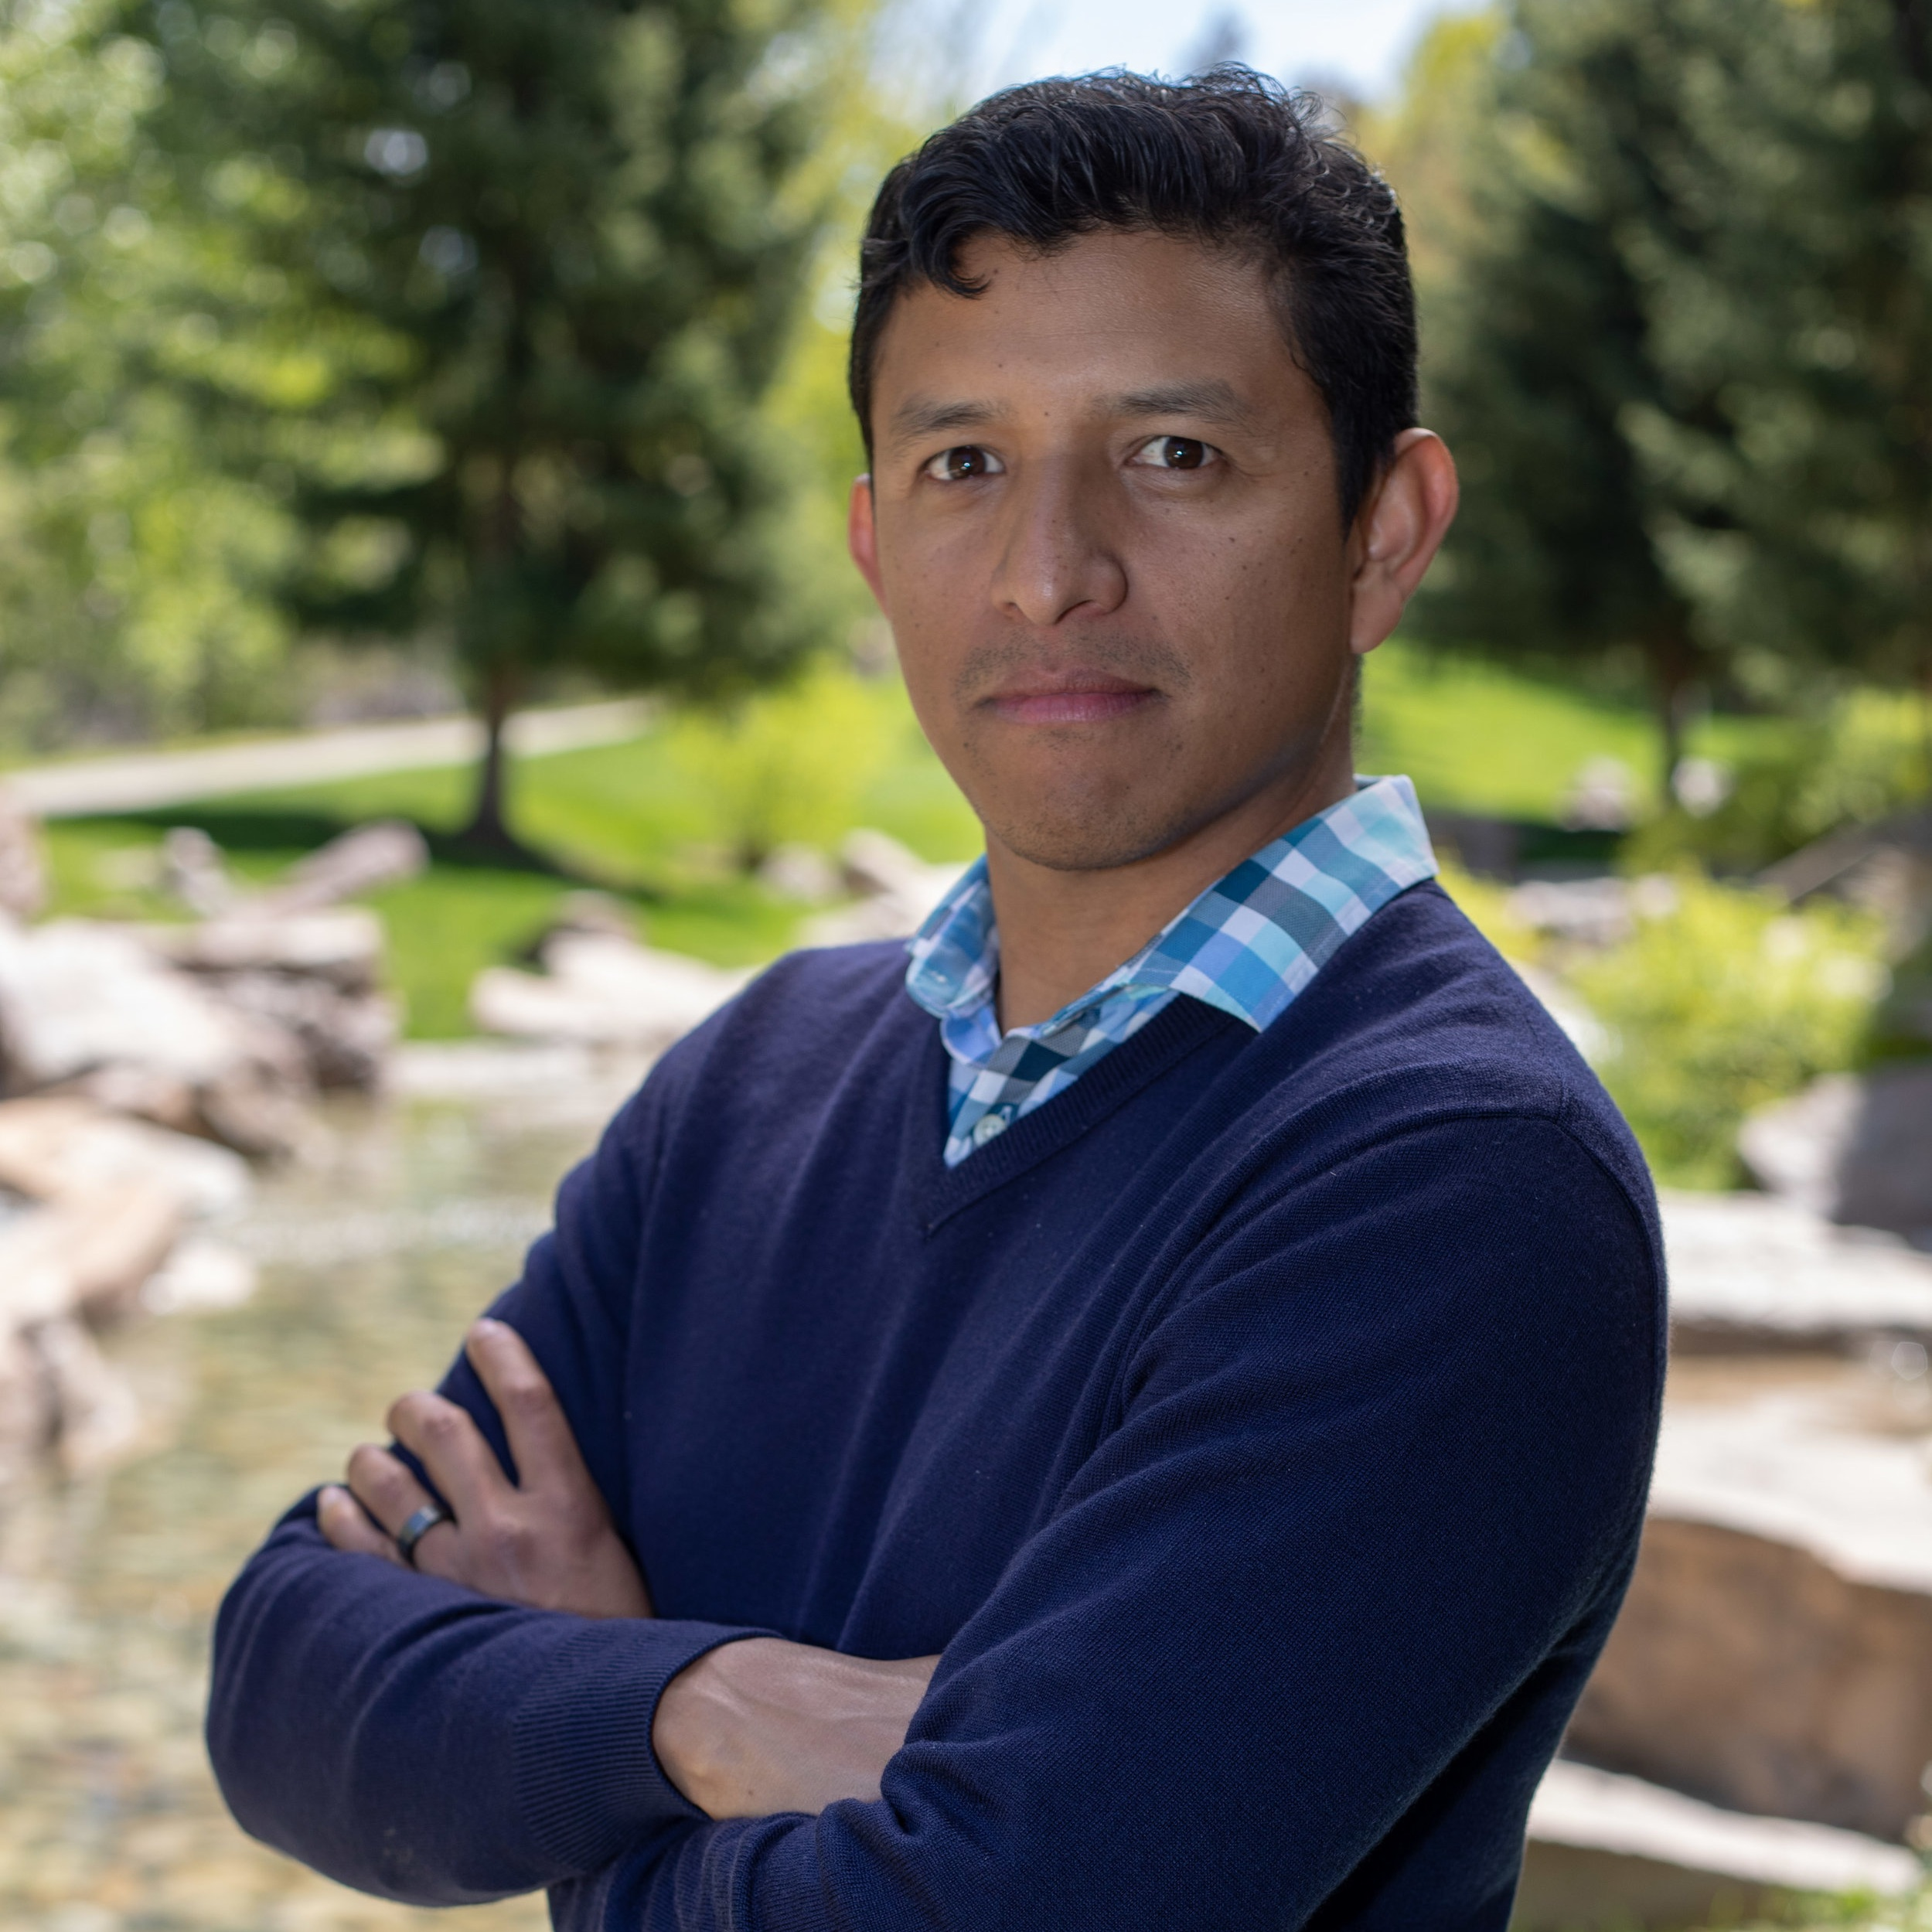 Jaime I Lima    Financial Services Professional with New York Life   Jaime Lima is a military veteran with 12 years of active duty service in the U.S. Marine Corps. He is an agent with New York Life Insurance Company out of the Idaho General Office in downtown Boise. As an agent with New York Life, Jaime has helped the local community by educating and developing sound financial strategies for business owners and families. He is an Ambassador for Family Advocates, a nonprofit that works to strengthen families and keep kids safe, and served on the board for Go Lead Idaho, a local nonprofit that encourages women to lead and demonstrates why it matters, as the first and only male board member from 2016 to 2019.